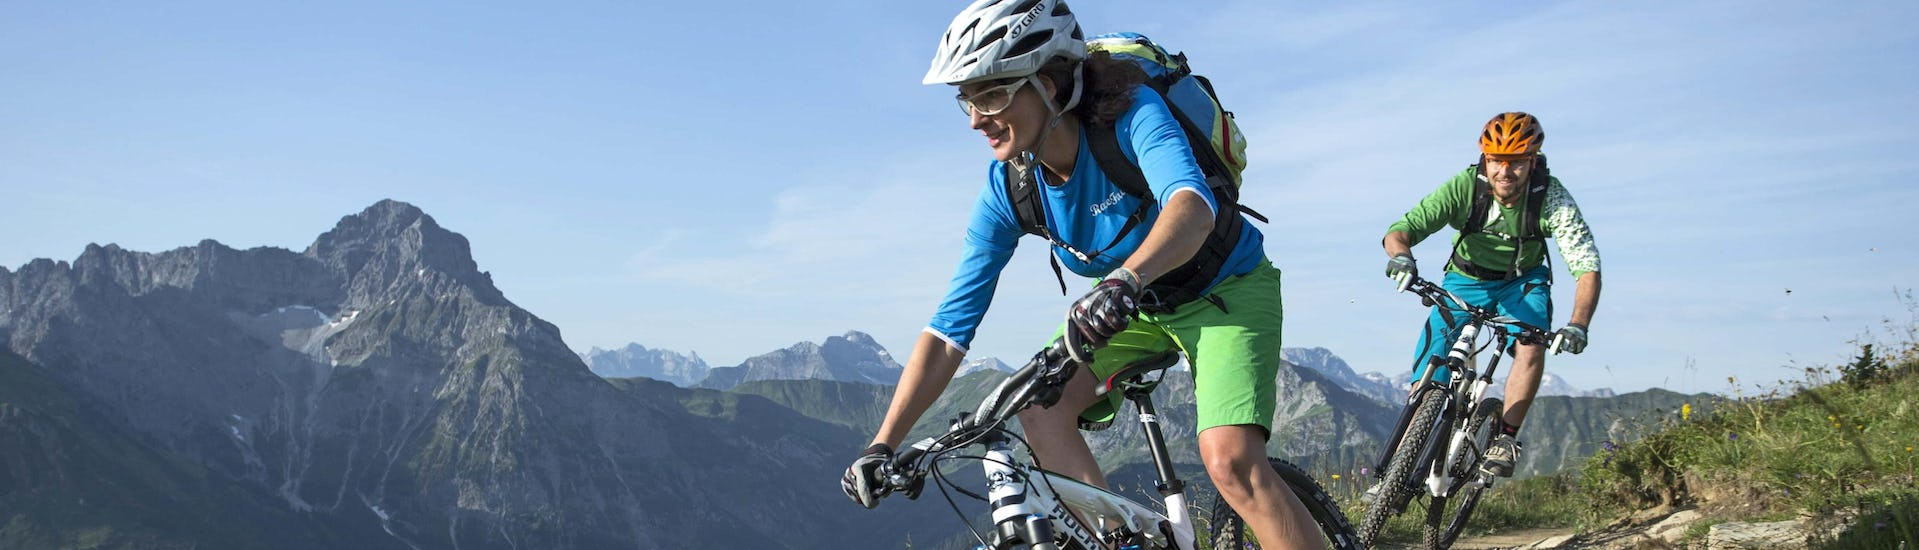 Mountain Biking (c) Shutterstock